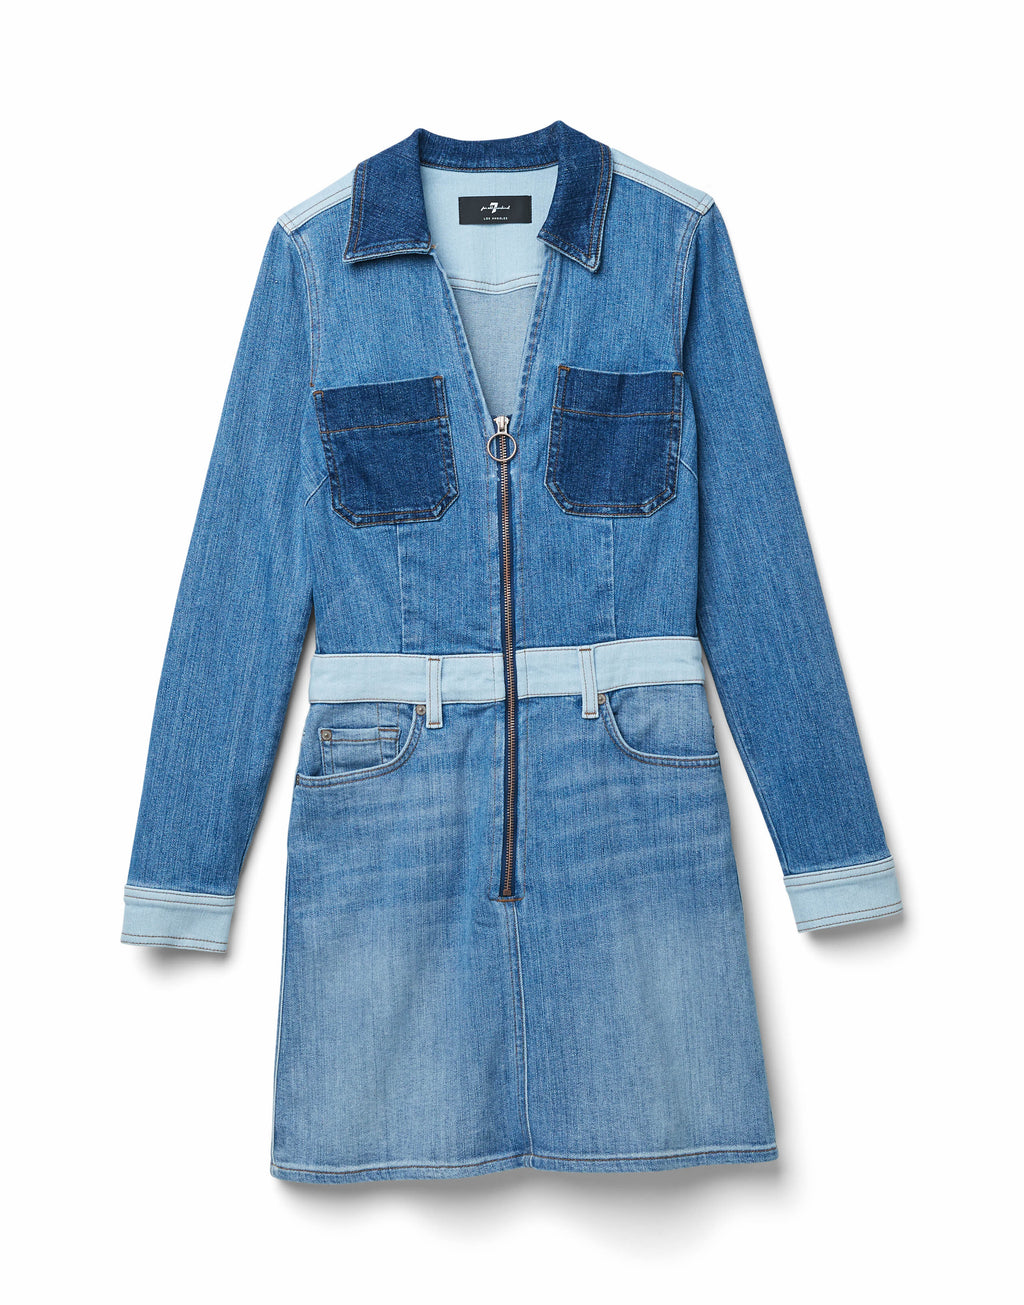 7 For All Mankind Patchwork Dress